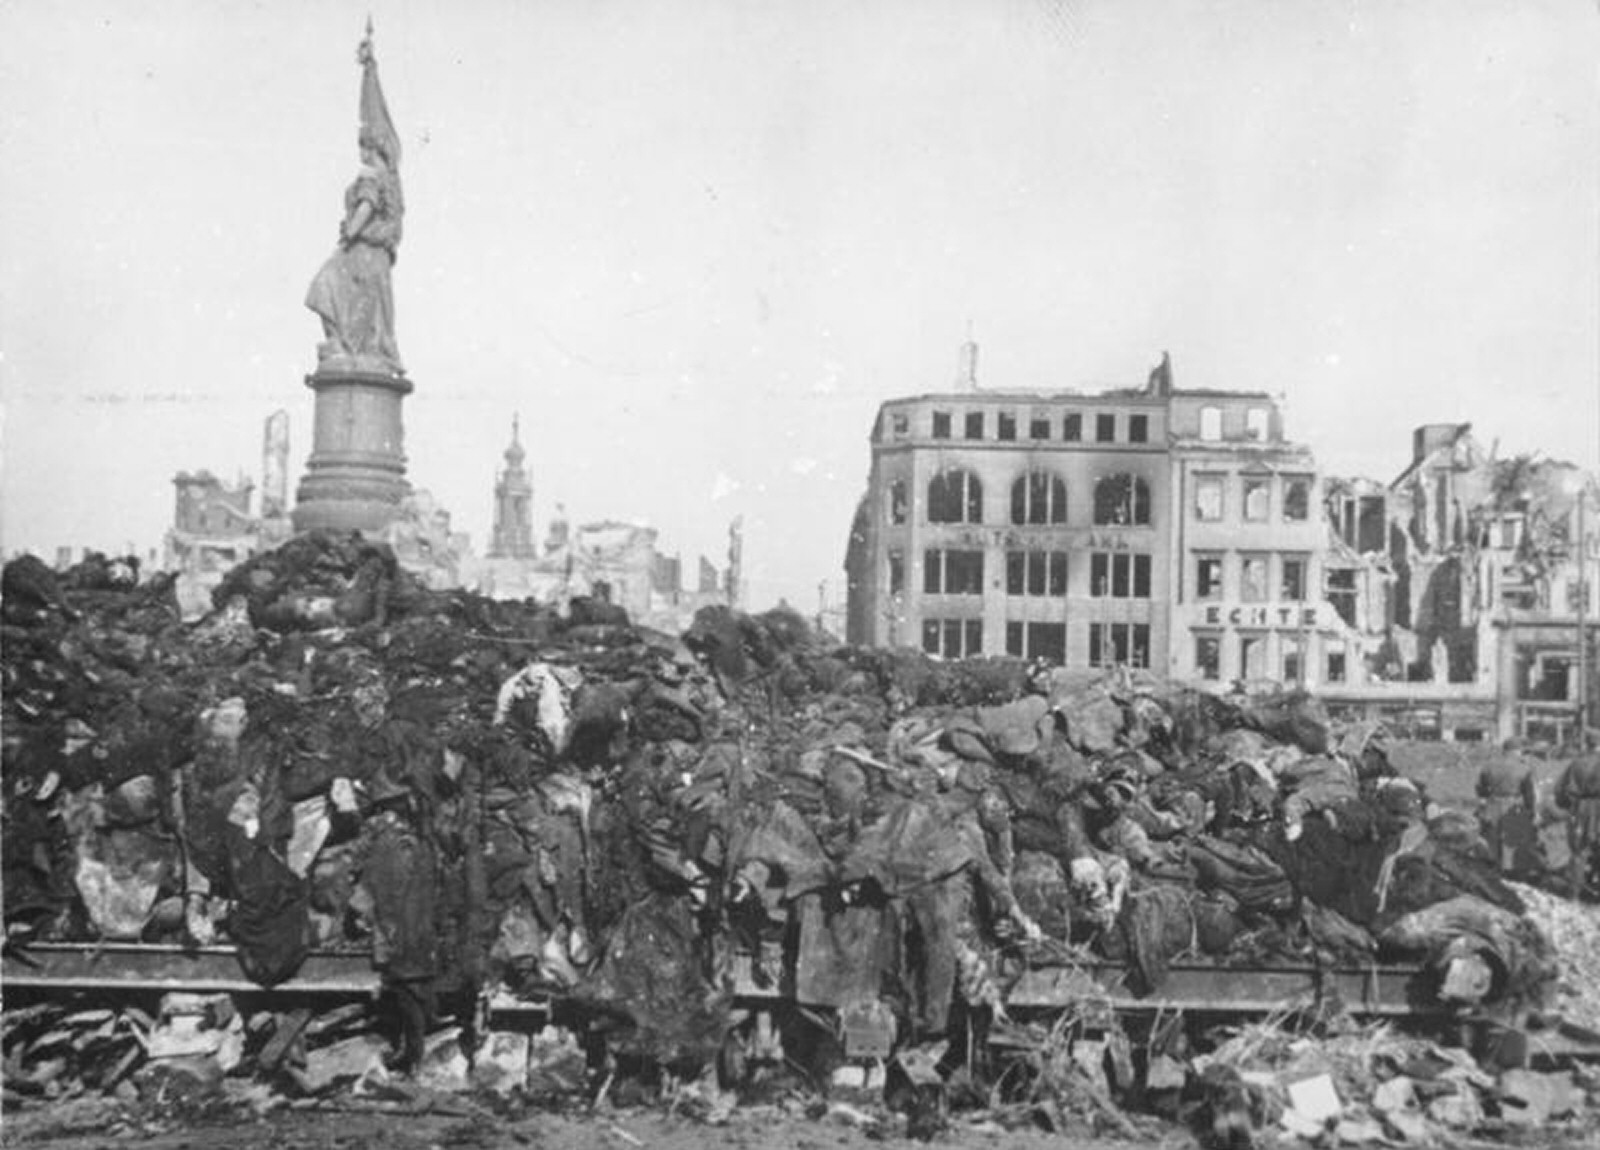 A pile of bodies awaits cremation after the firebombing of Dresden, February 1945.